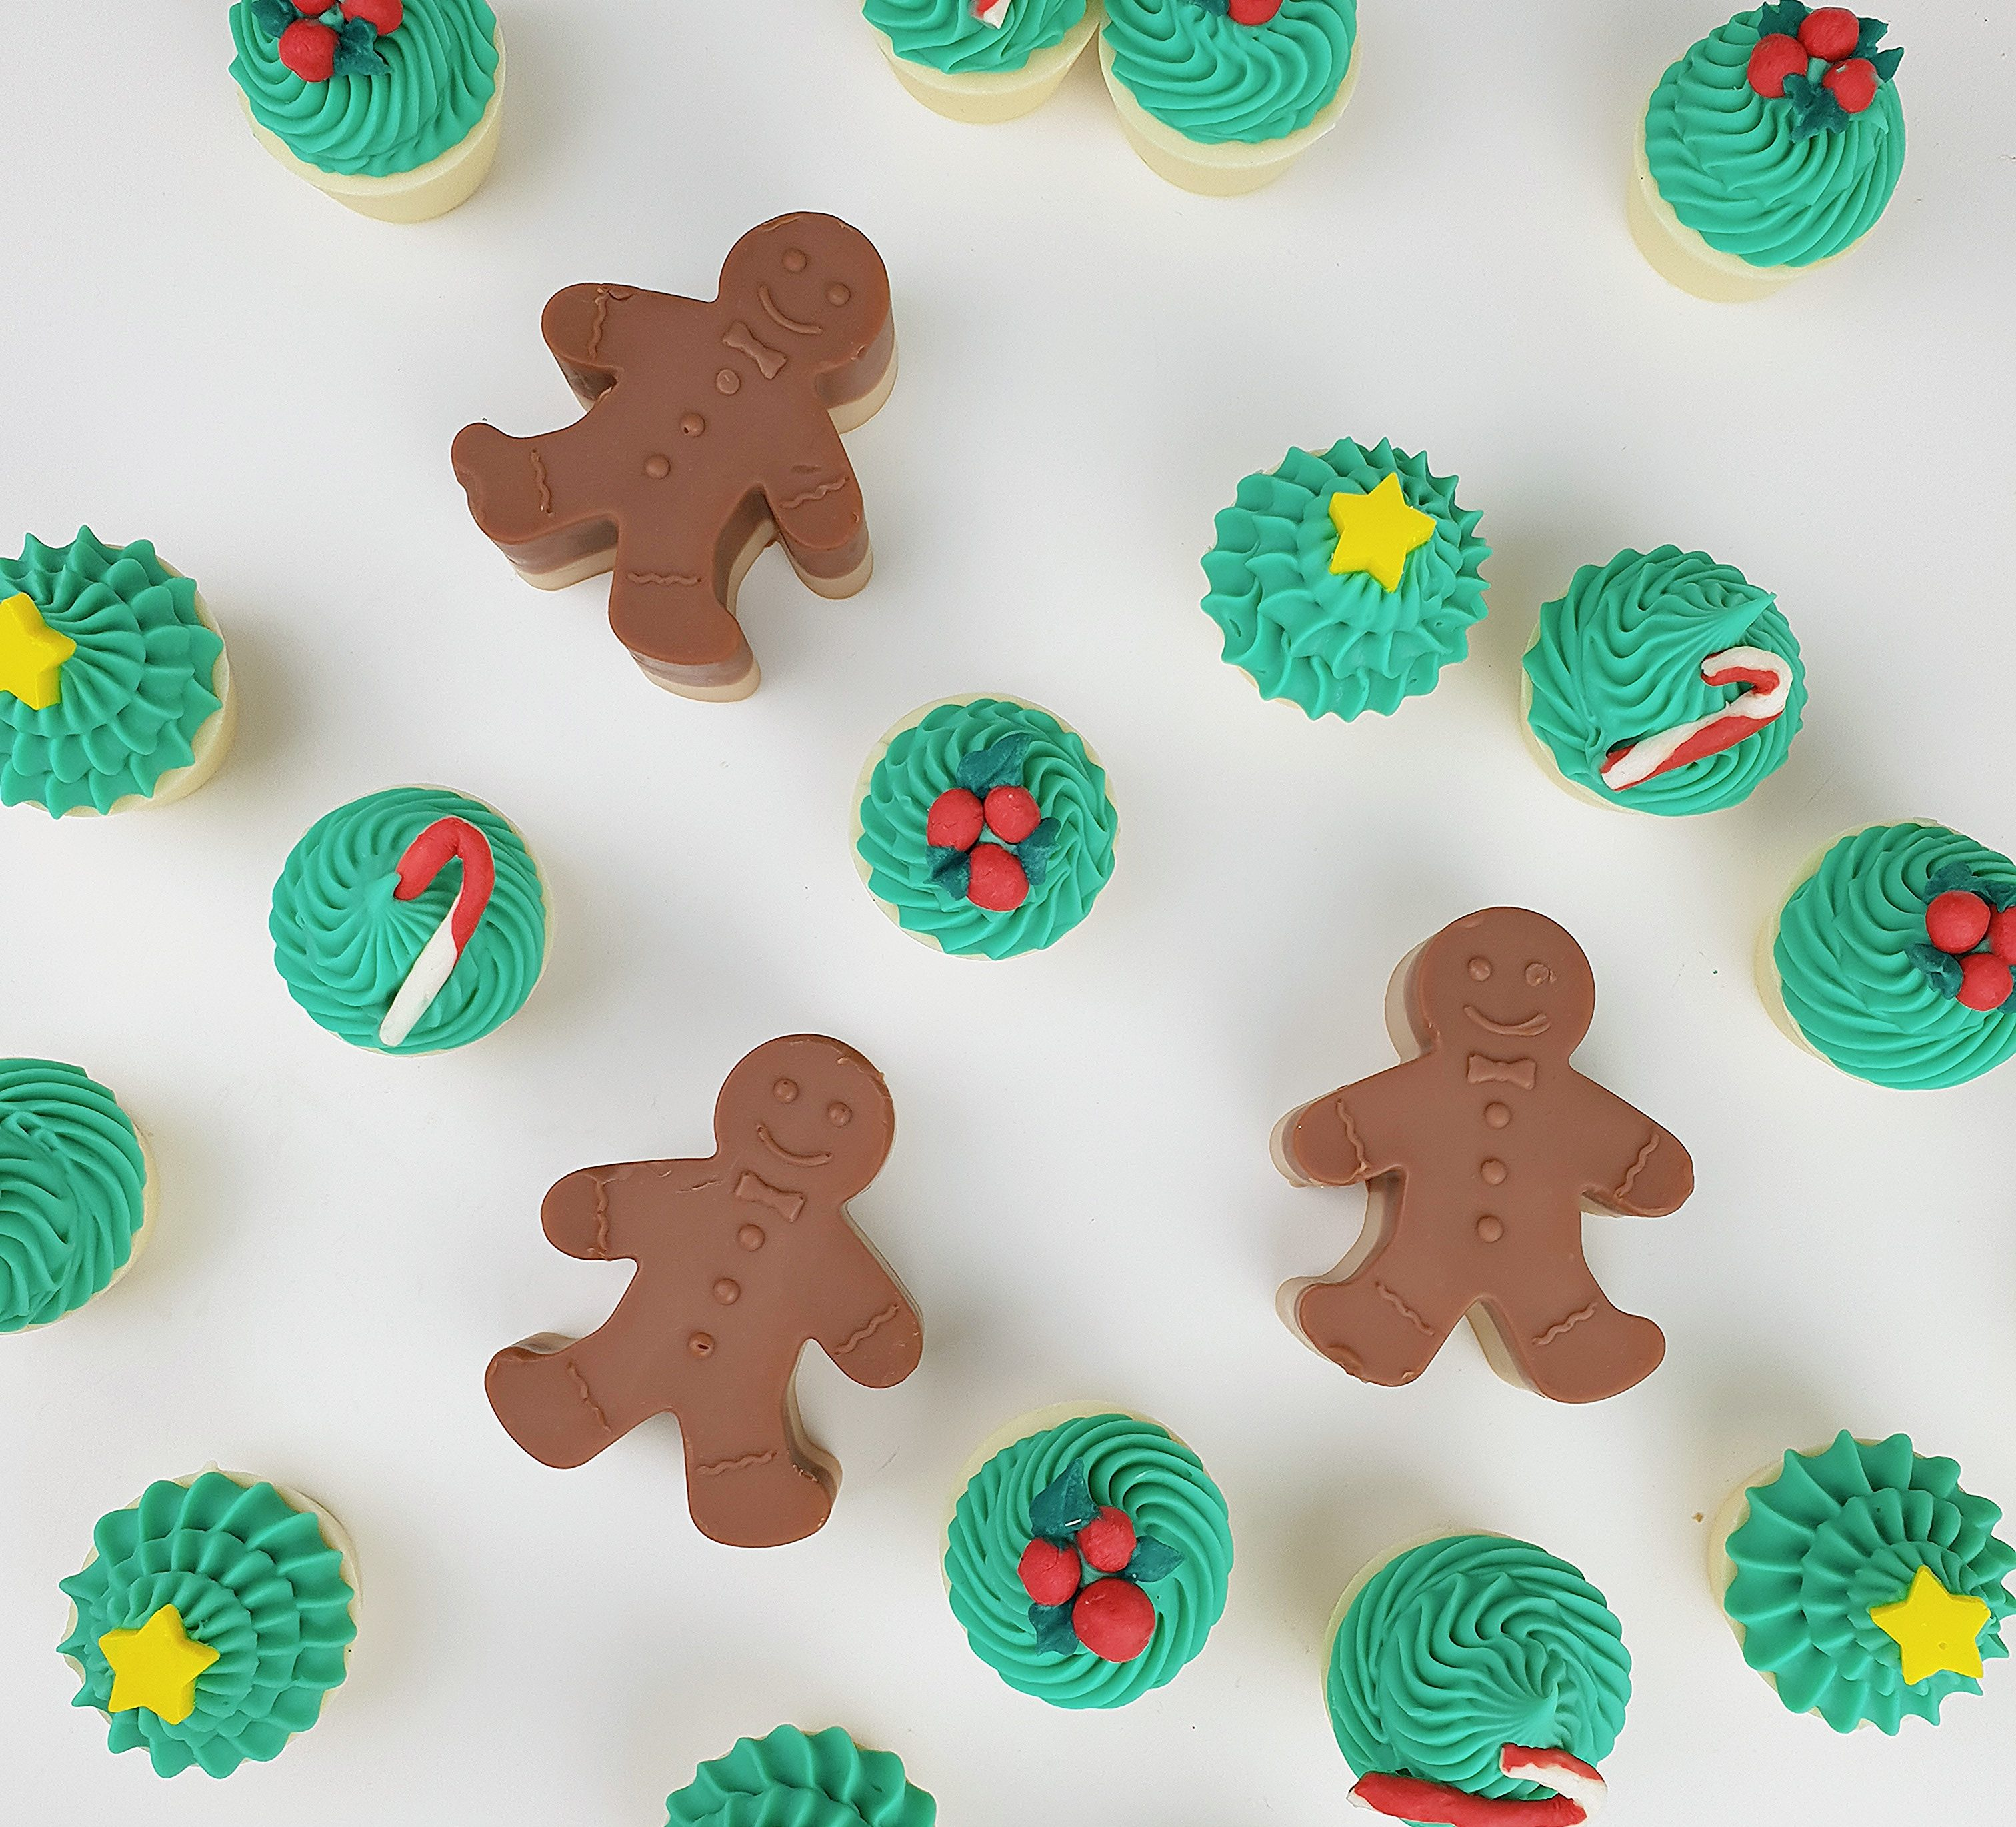 Soaps in the shape of Christmas cupcakes and gingerbread men